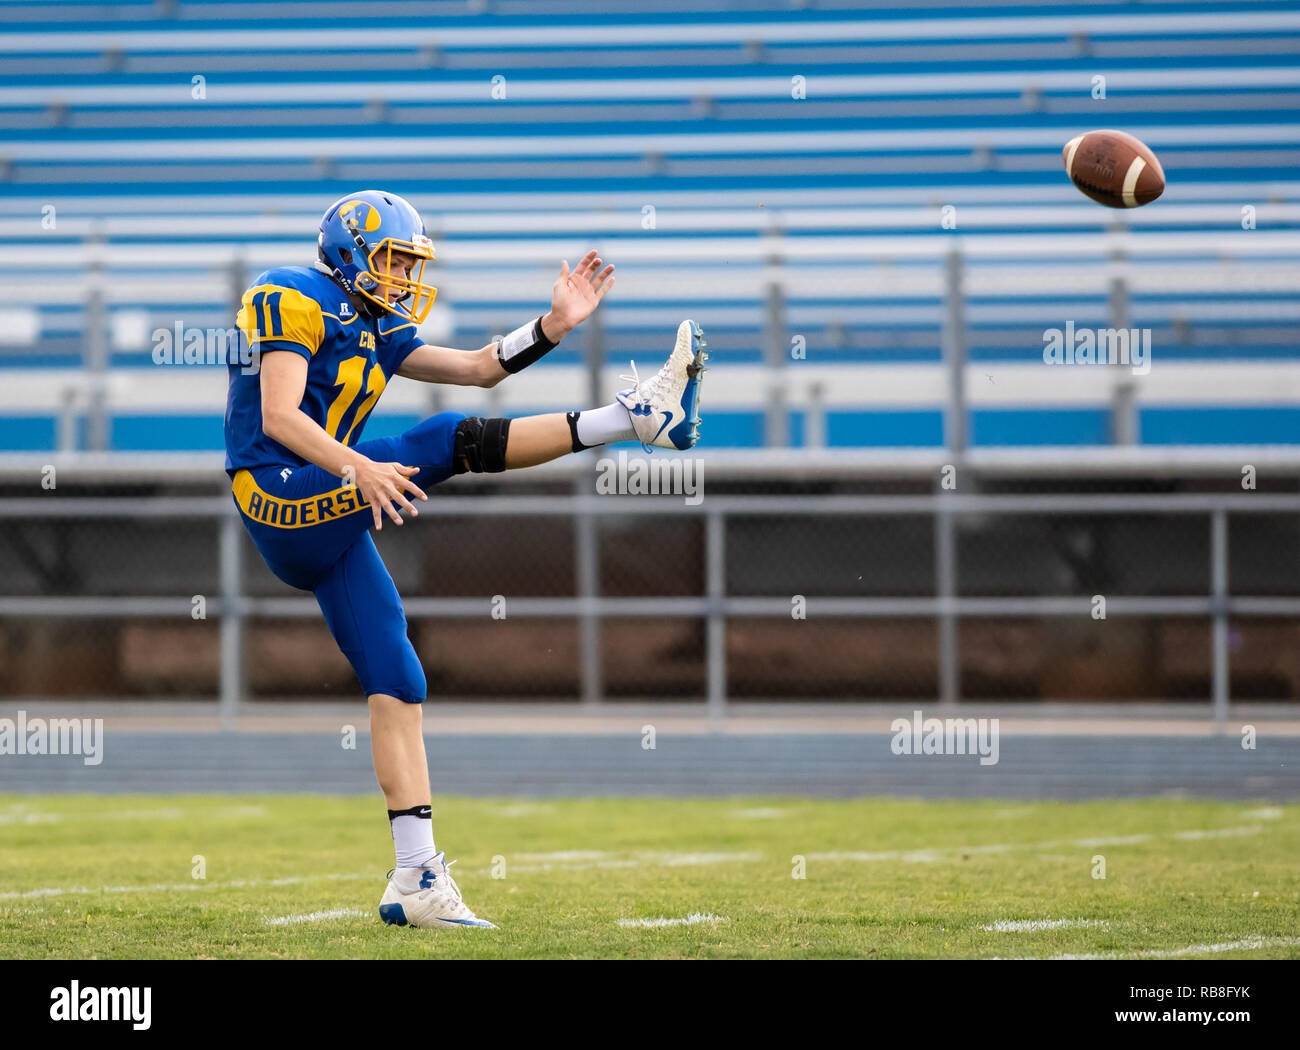 Football action with West Valley vs. Anderson in Anderson, California. - Stock Image